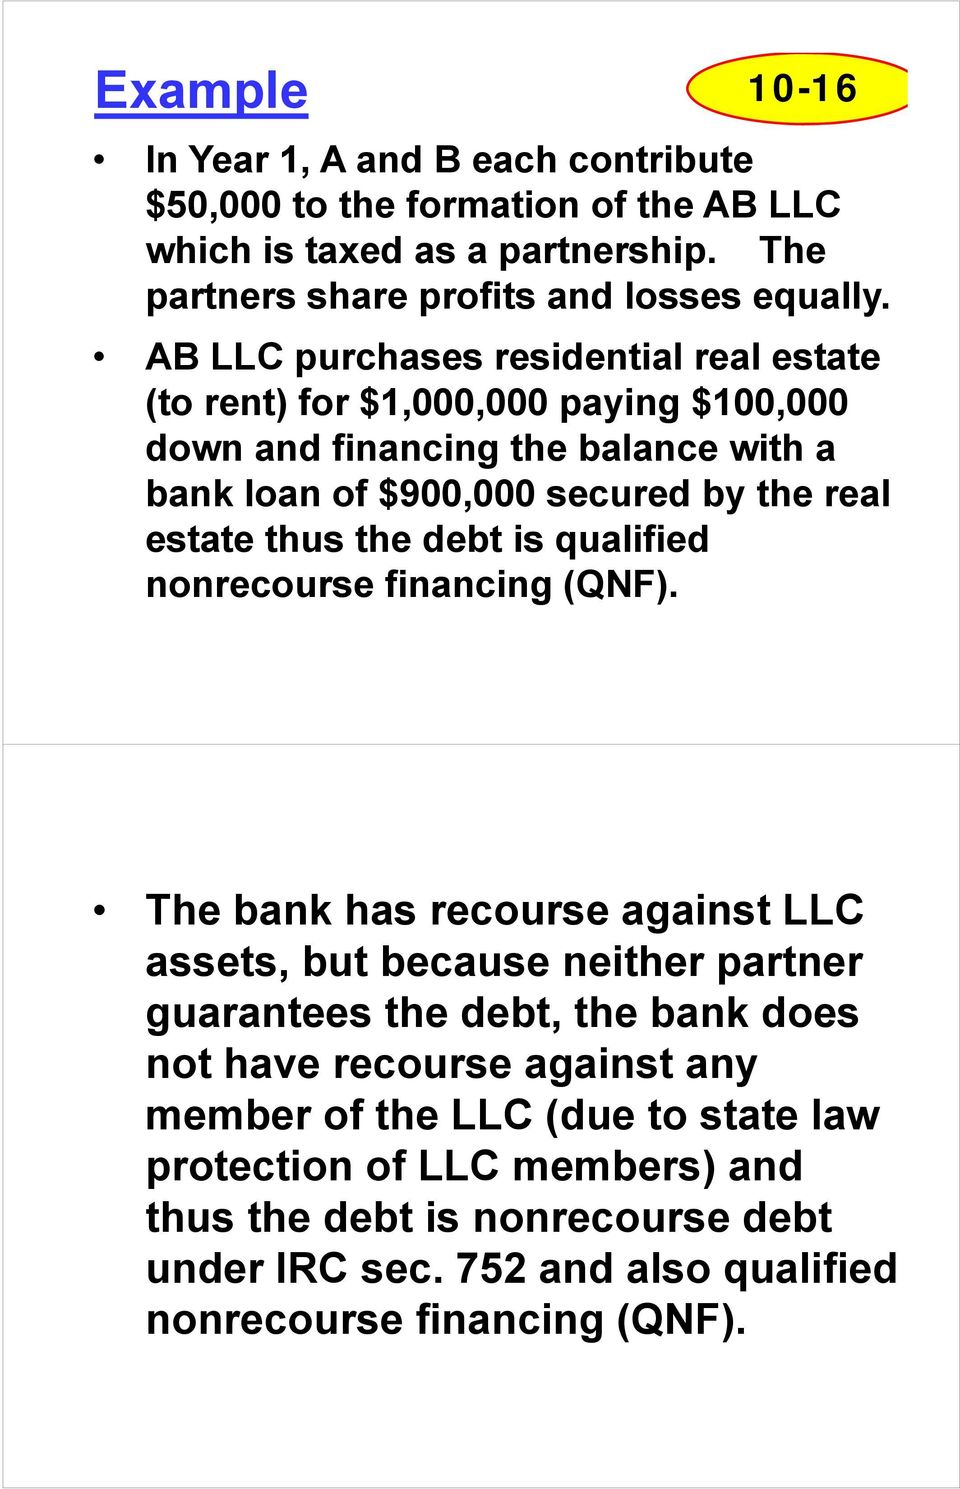 the debt is qualified nonrecourse financing (QNF).